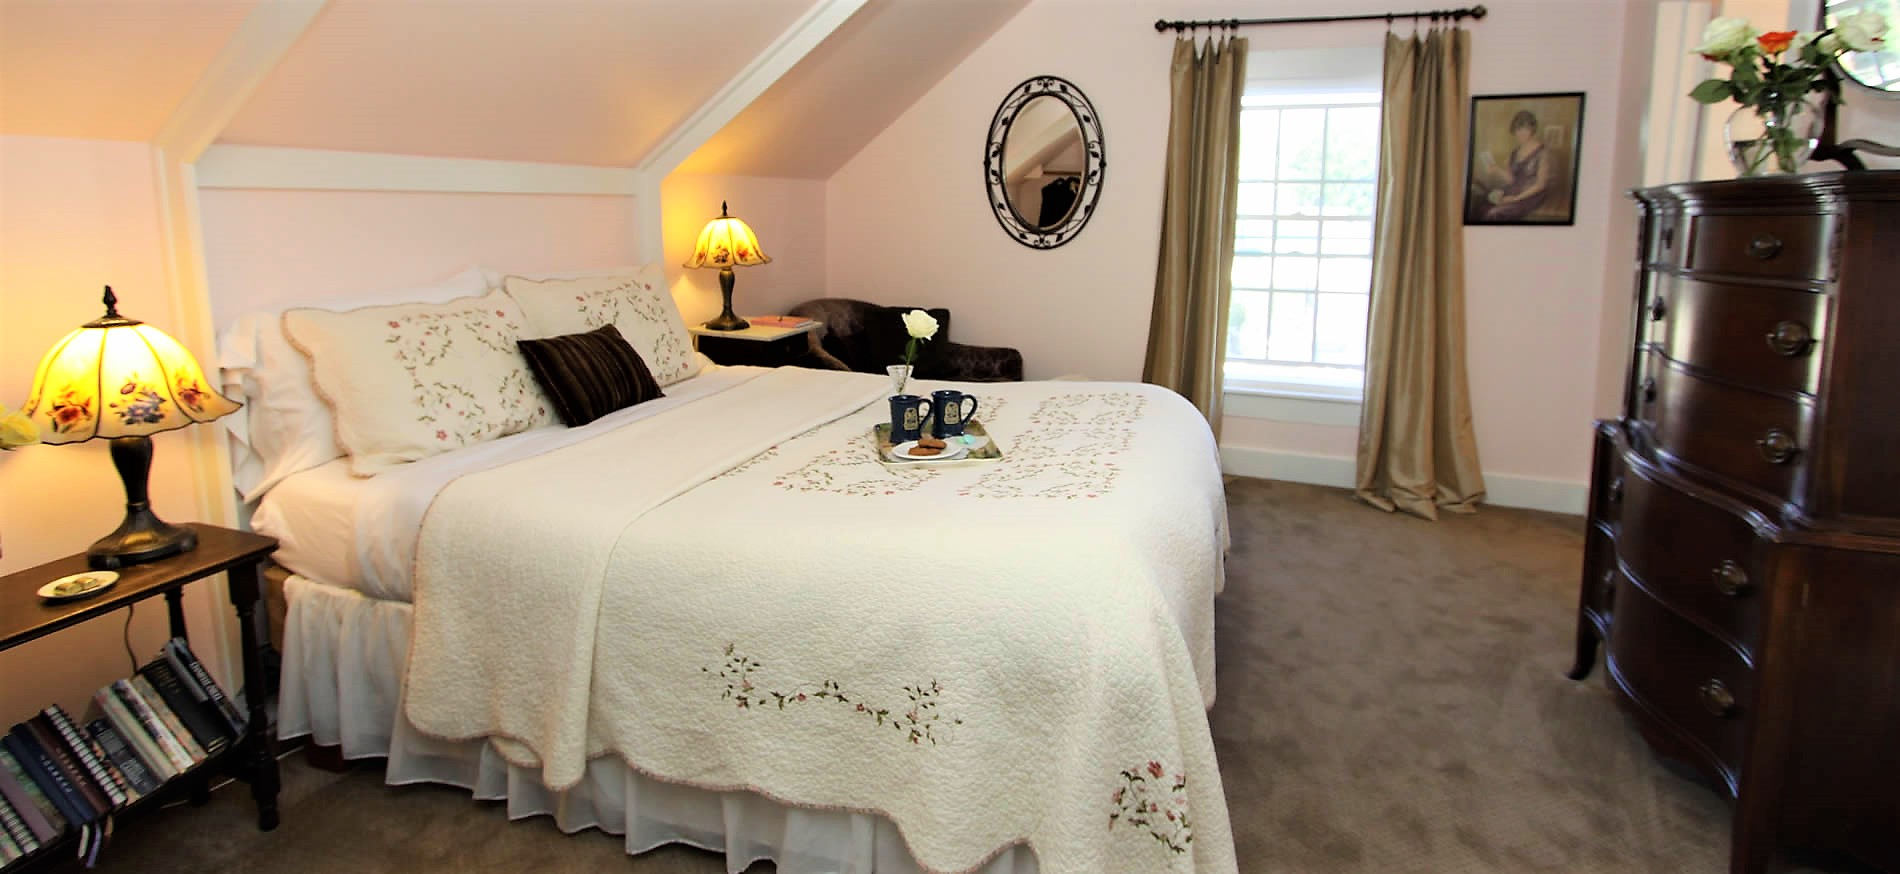 cambria bed and breakfast guestroom with bed and dresser